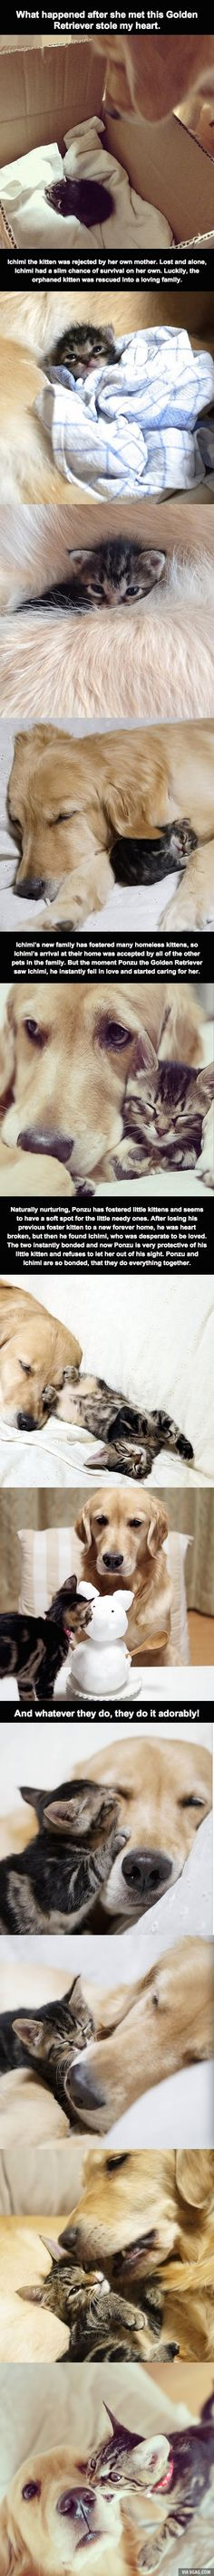 Golden retriever bonding to rejected kitten to keep it safe (this so sweet!)